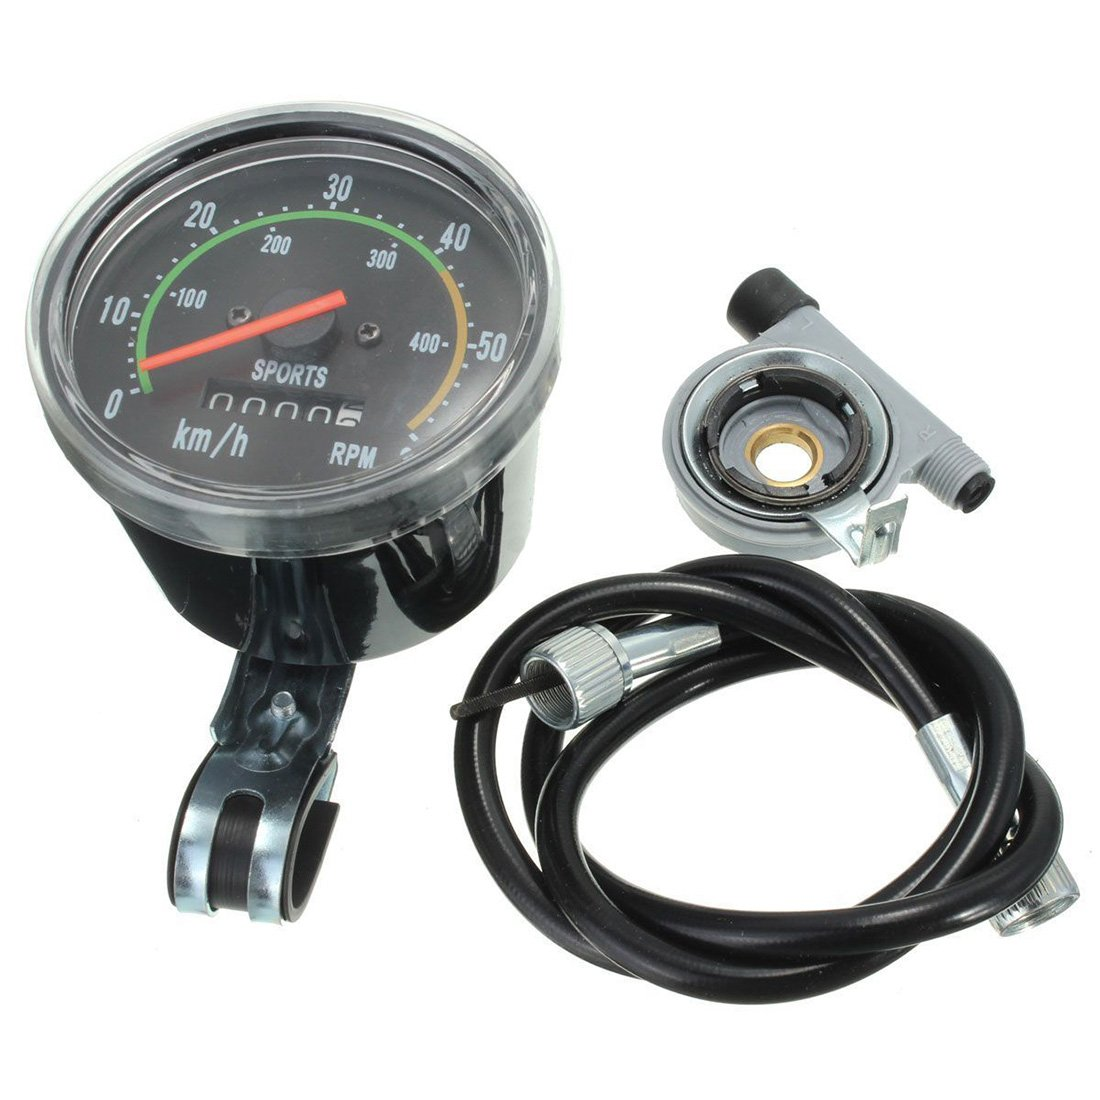 SODIAL(R) Mechanical Odometer Speedometer Resettable RPM For Bicycle Bike Motorcycle